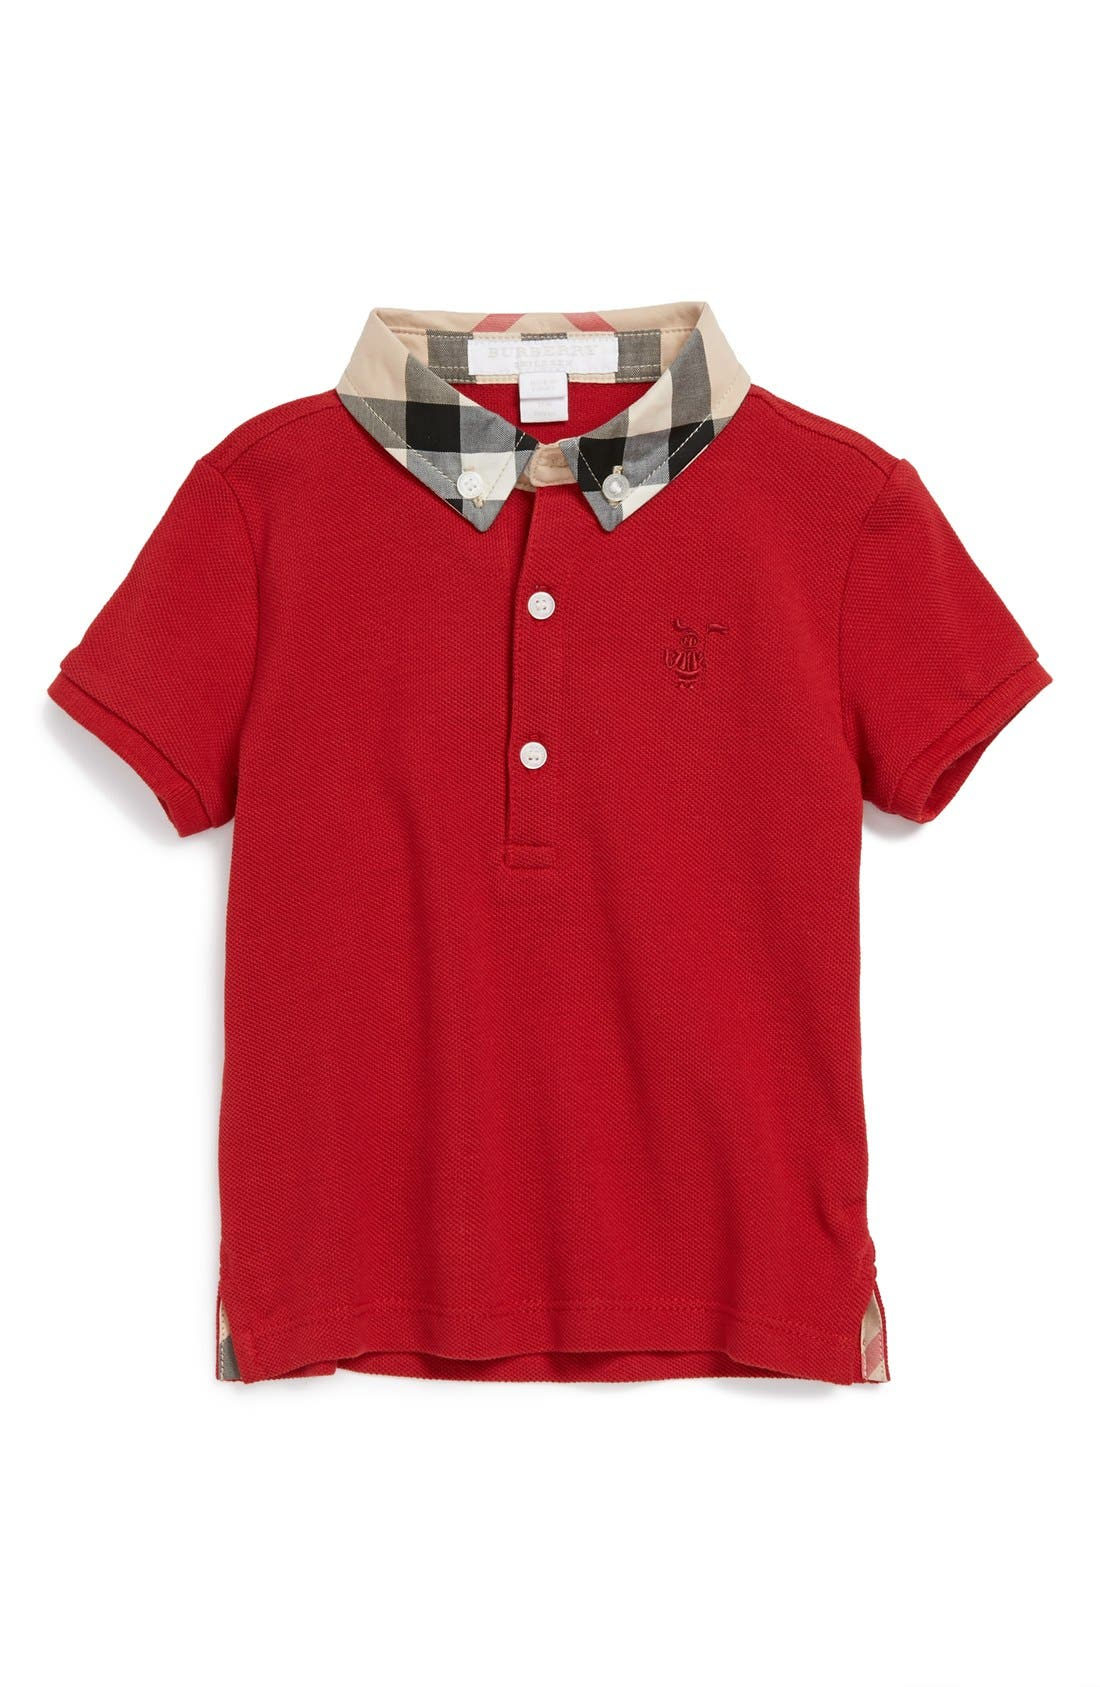 'William' Cotton Polo,                             Main thumbnail 1, color,                             Military Red